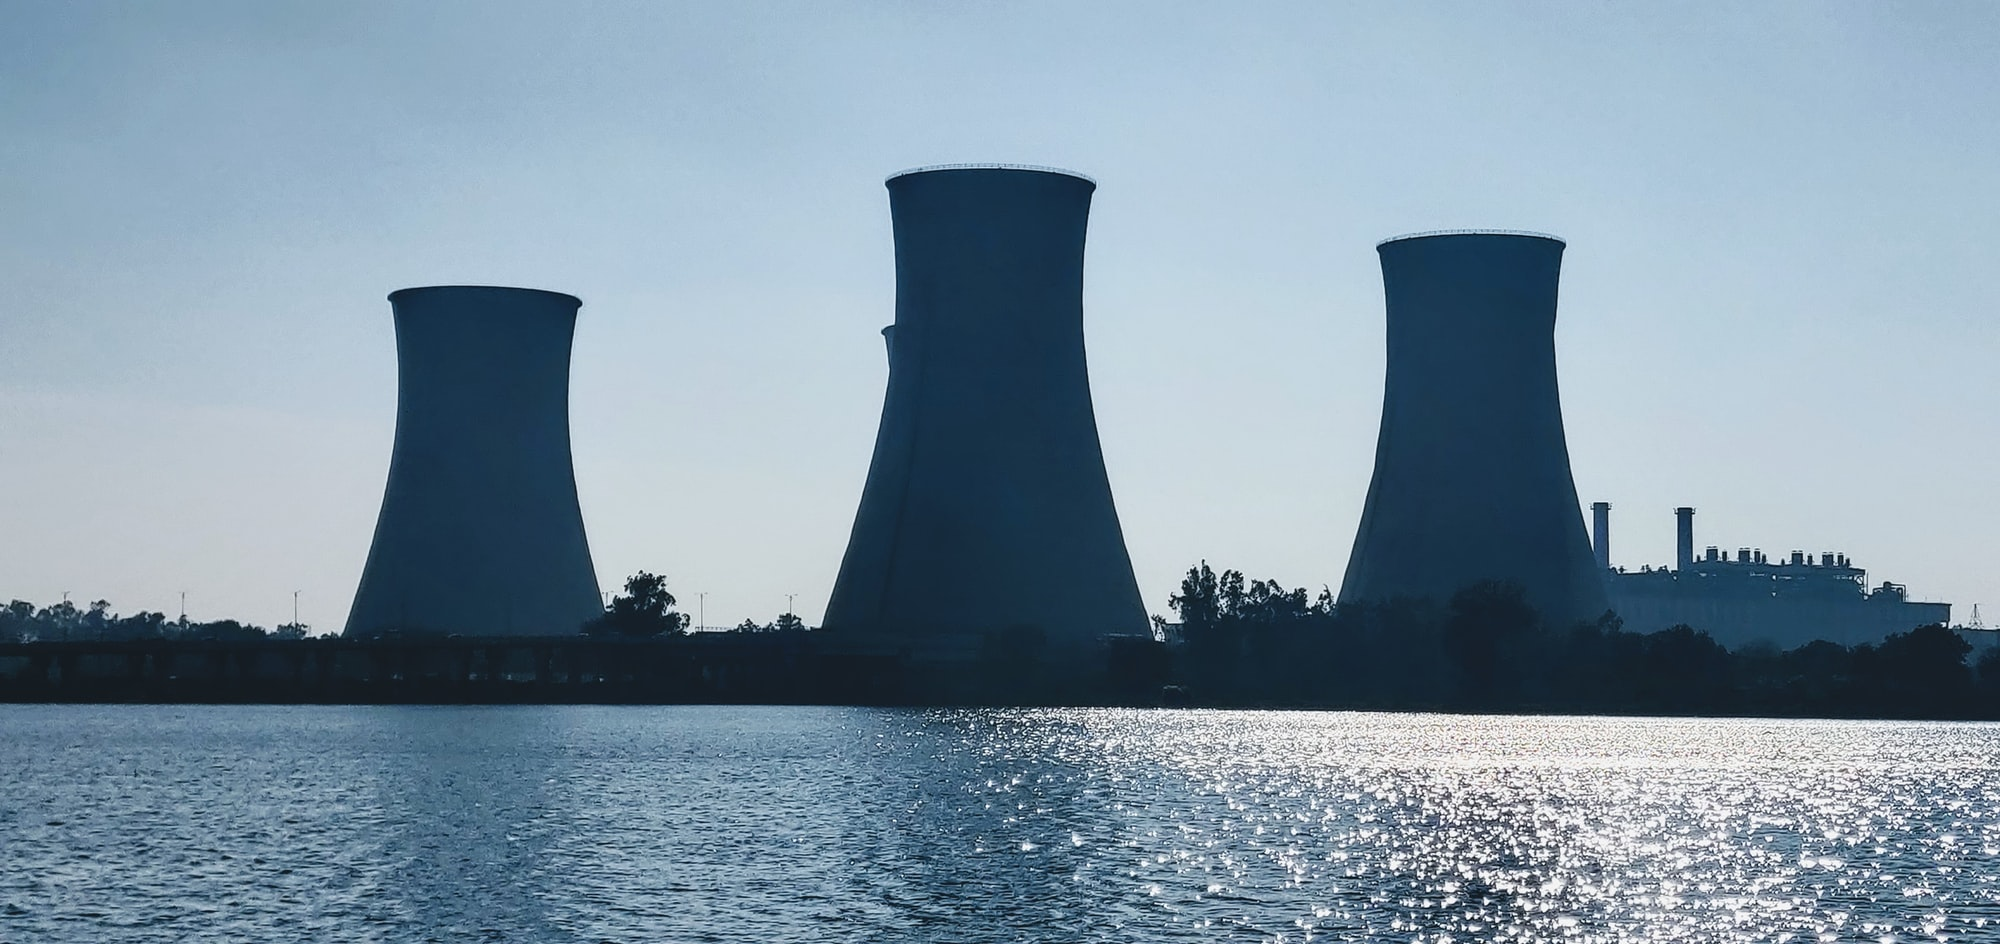 Germany's Development and Fear of Nuclear Energy: A Tale of Two Stances